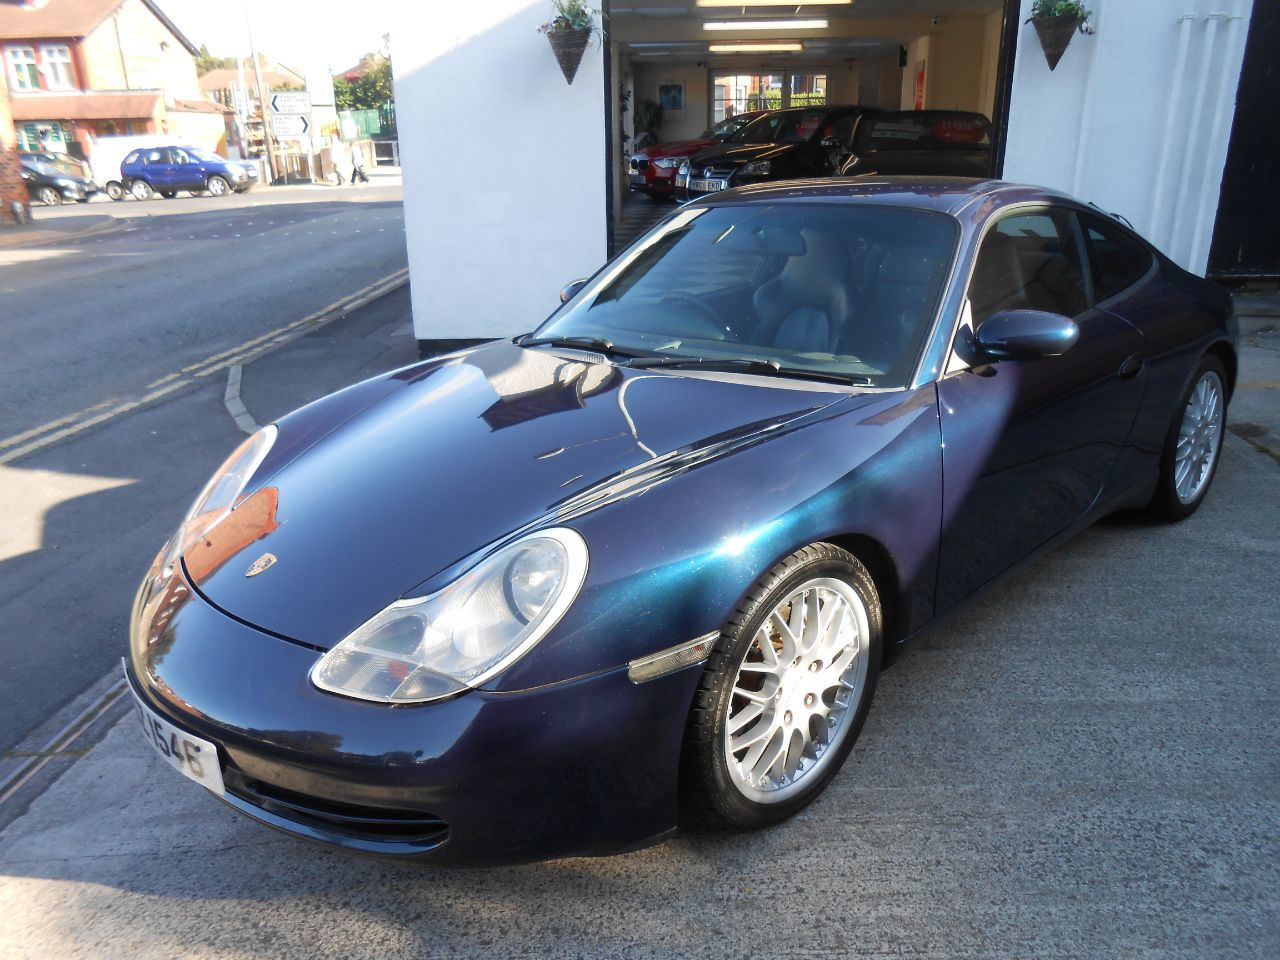 Porsche 911 Carrera 4 3.4 996 Coupe Petrol Blue